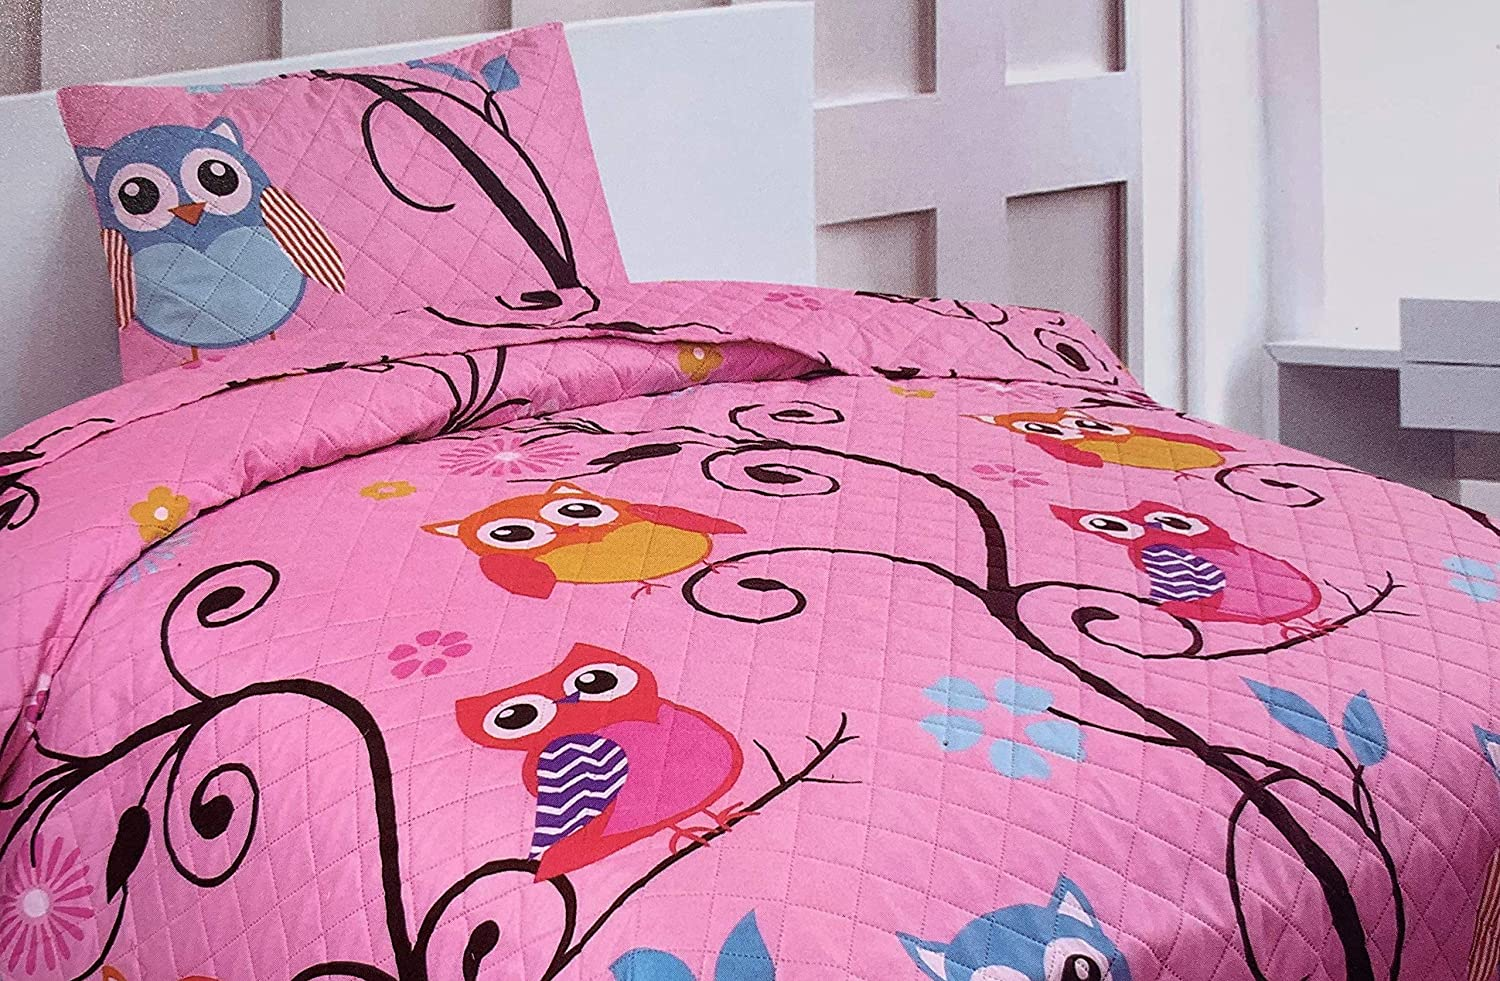 0abc51b15896 Sapphire Home 2 Piece Twin Size Girls Kids Bedspread Coverlet Quilt Set  with Sham, Owl Branch Print Pink Yellow Turquoise Girls Kids Bedding Set,  ...